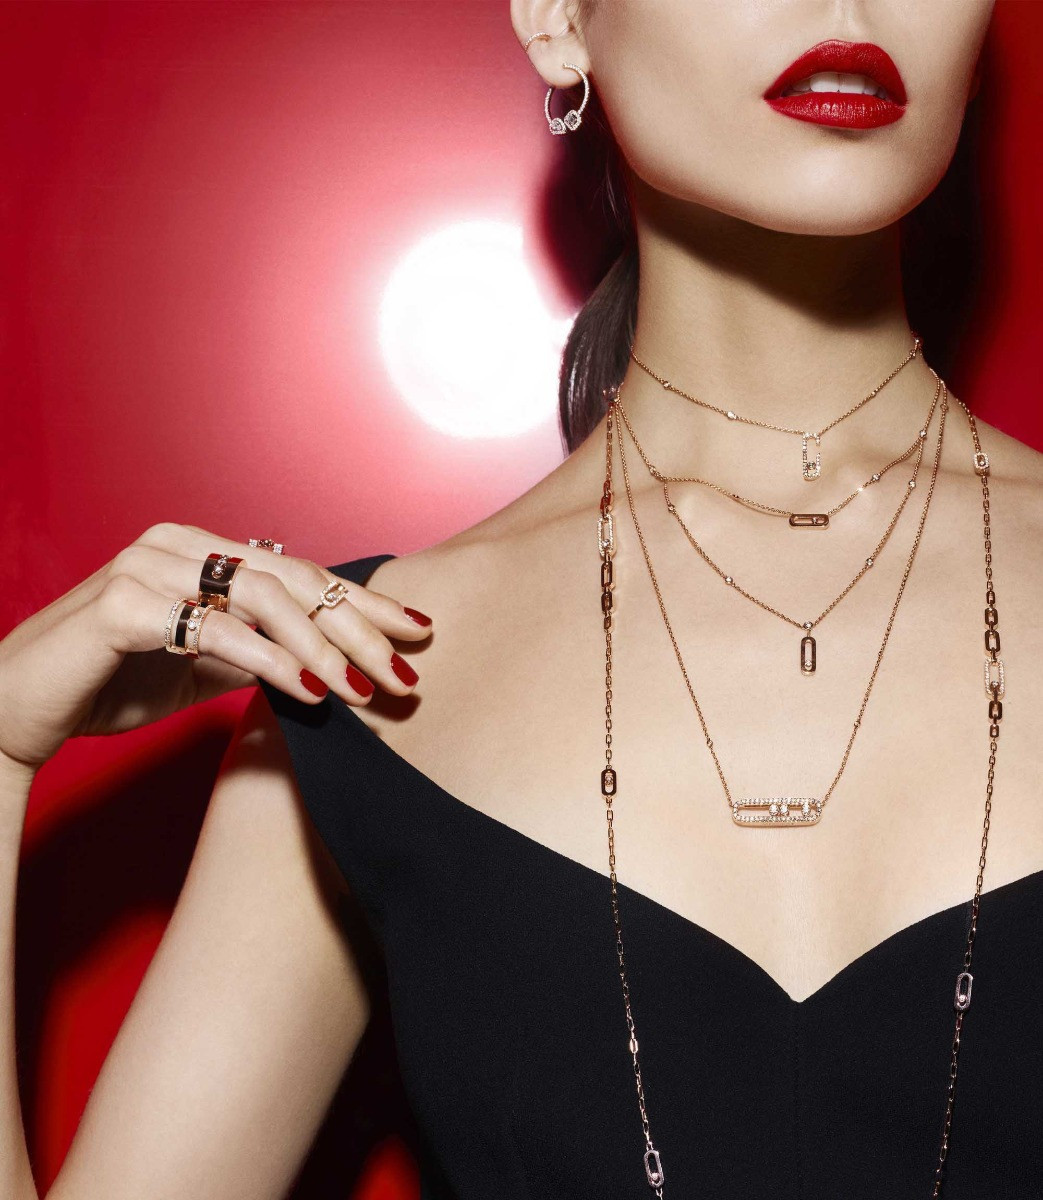 Messika Move Uno Diamond Station Necklace in 18K Gold on model